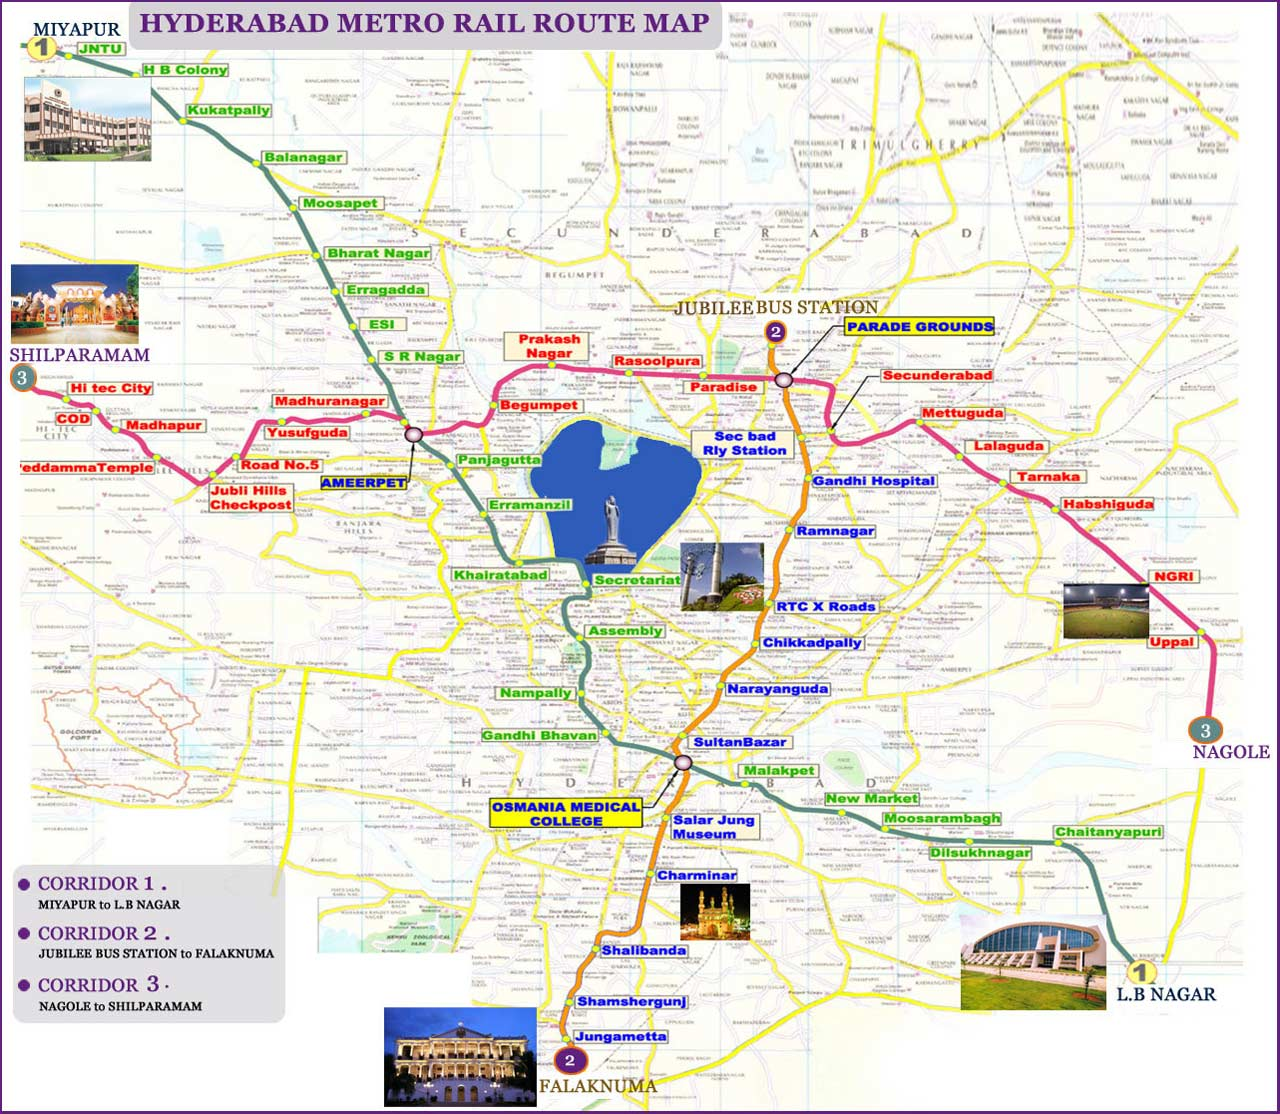 Subway Map of Hyderabad